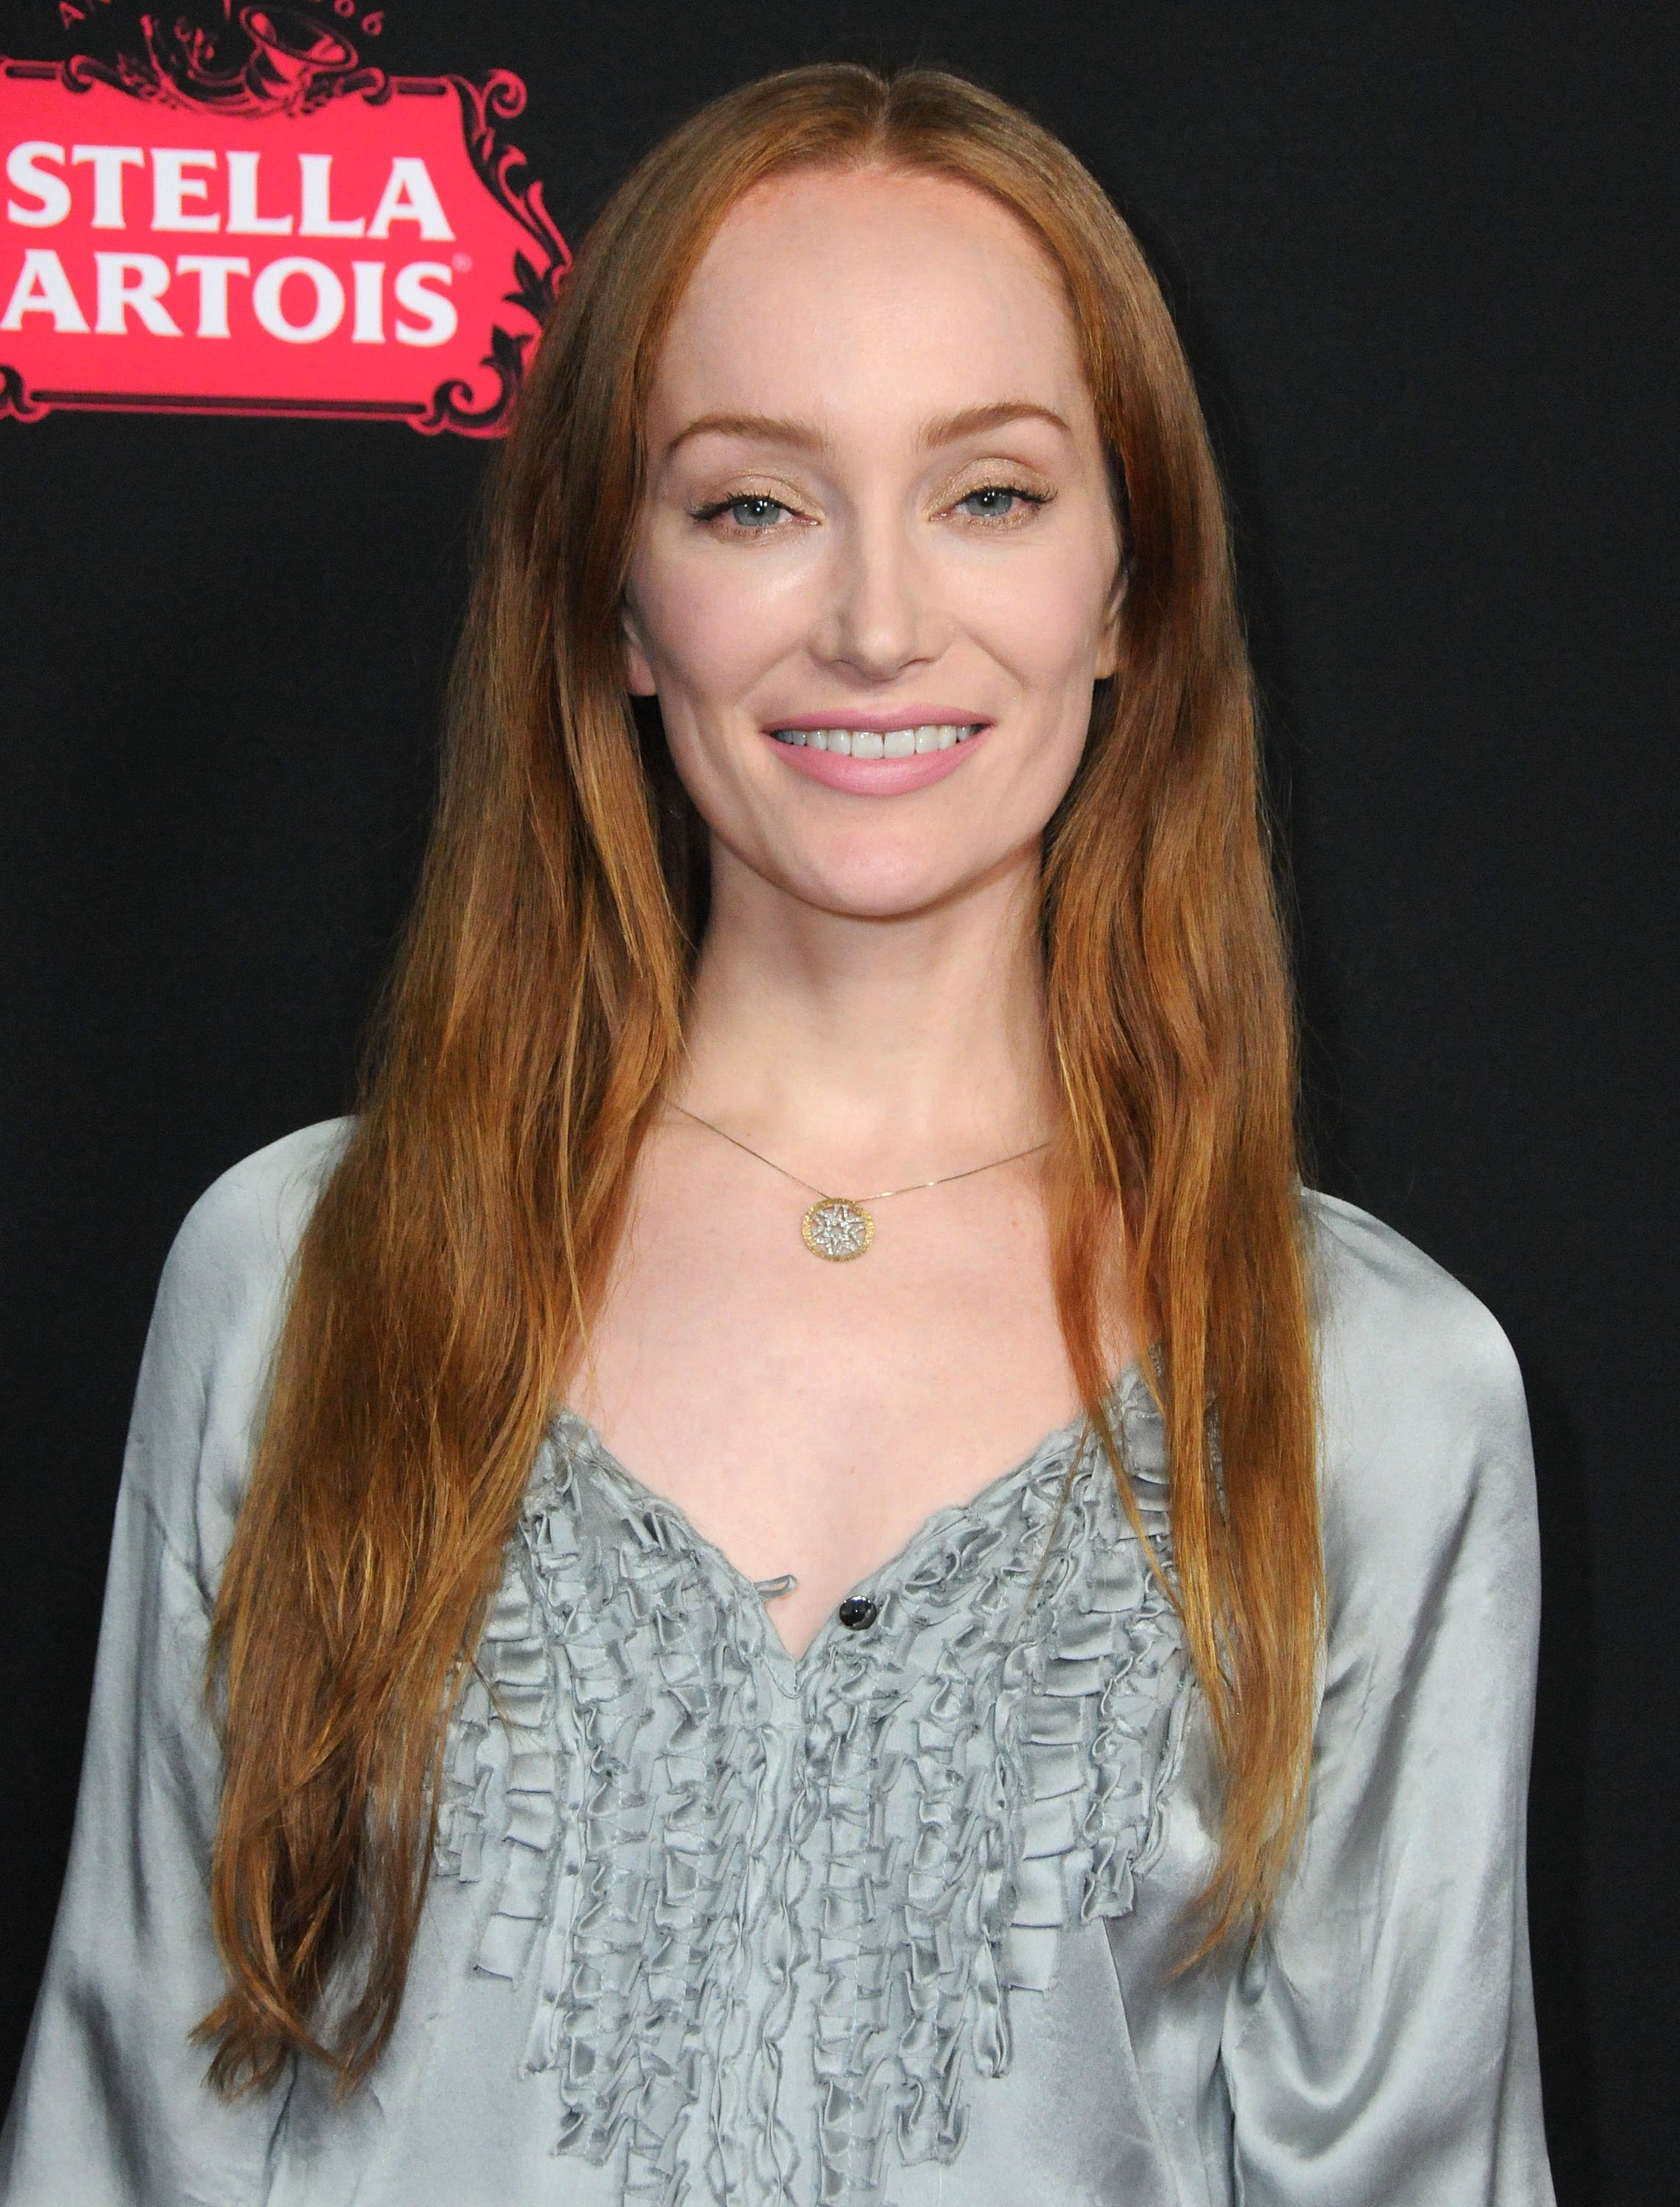 new hq pics of lotte verbeek at different events isobel murray isobelle molloy